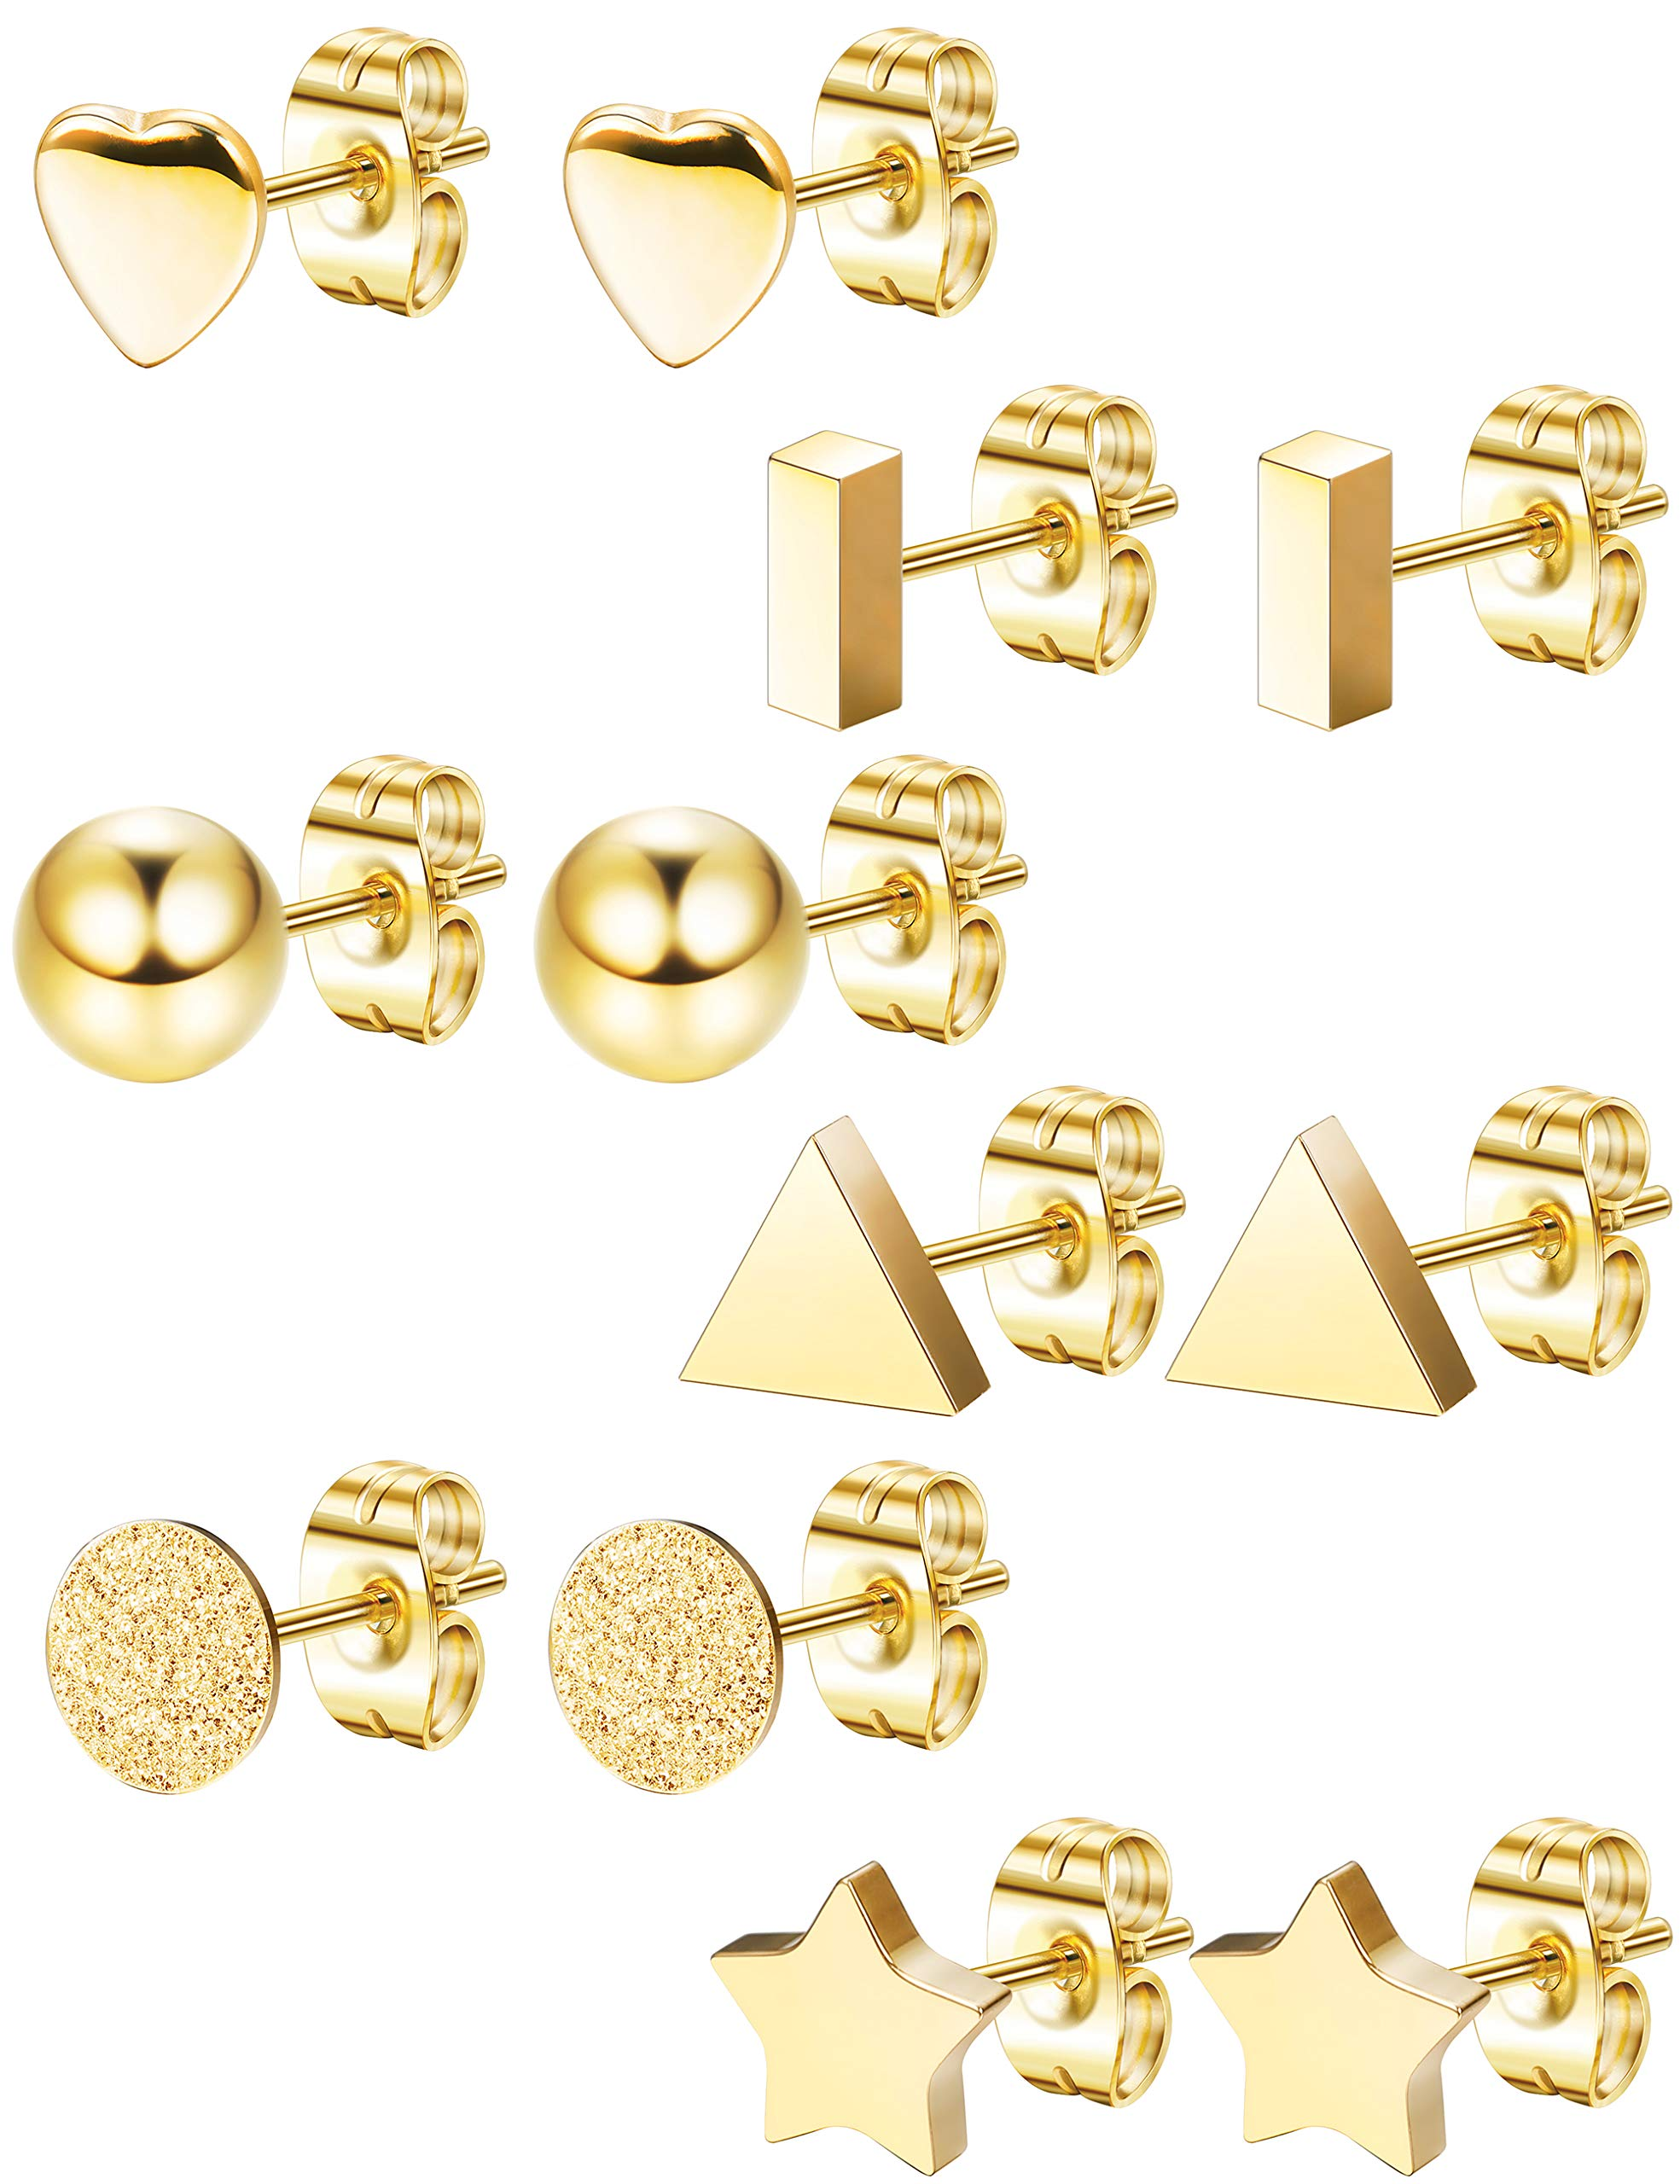 LOLIAS 6 Pairs Stainless Steel Stud Earrings Set for Women Girls Bar Heart Ball Star Triangle Ear Piercing,Gold by LOLIAS